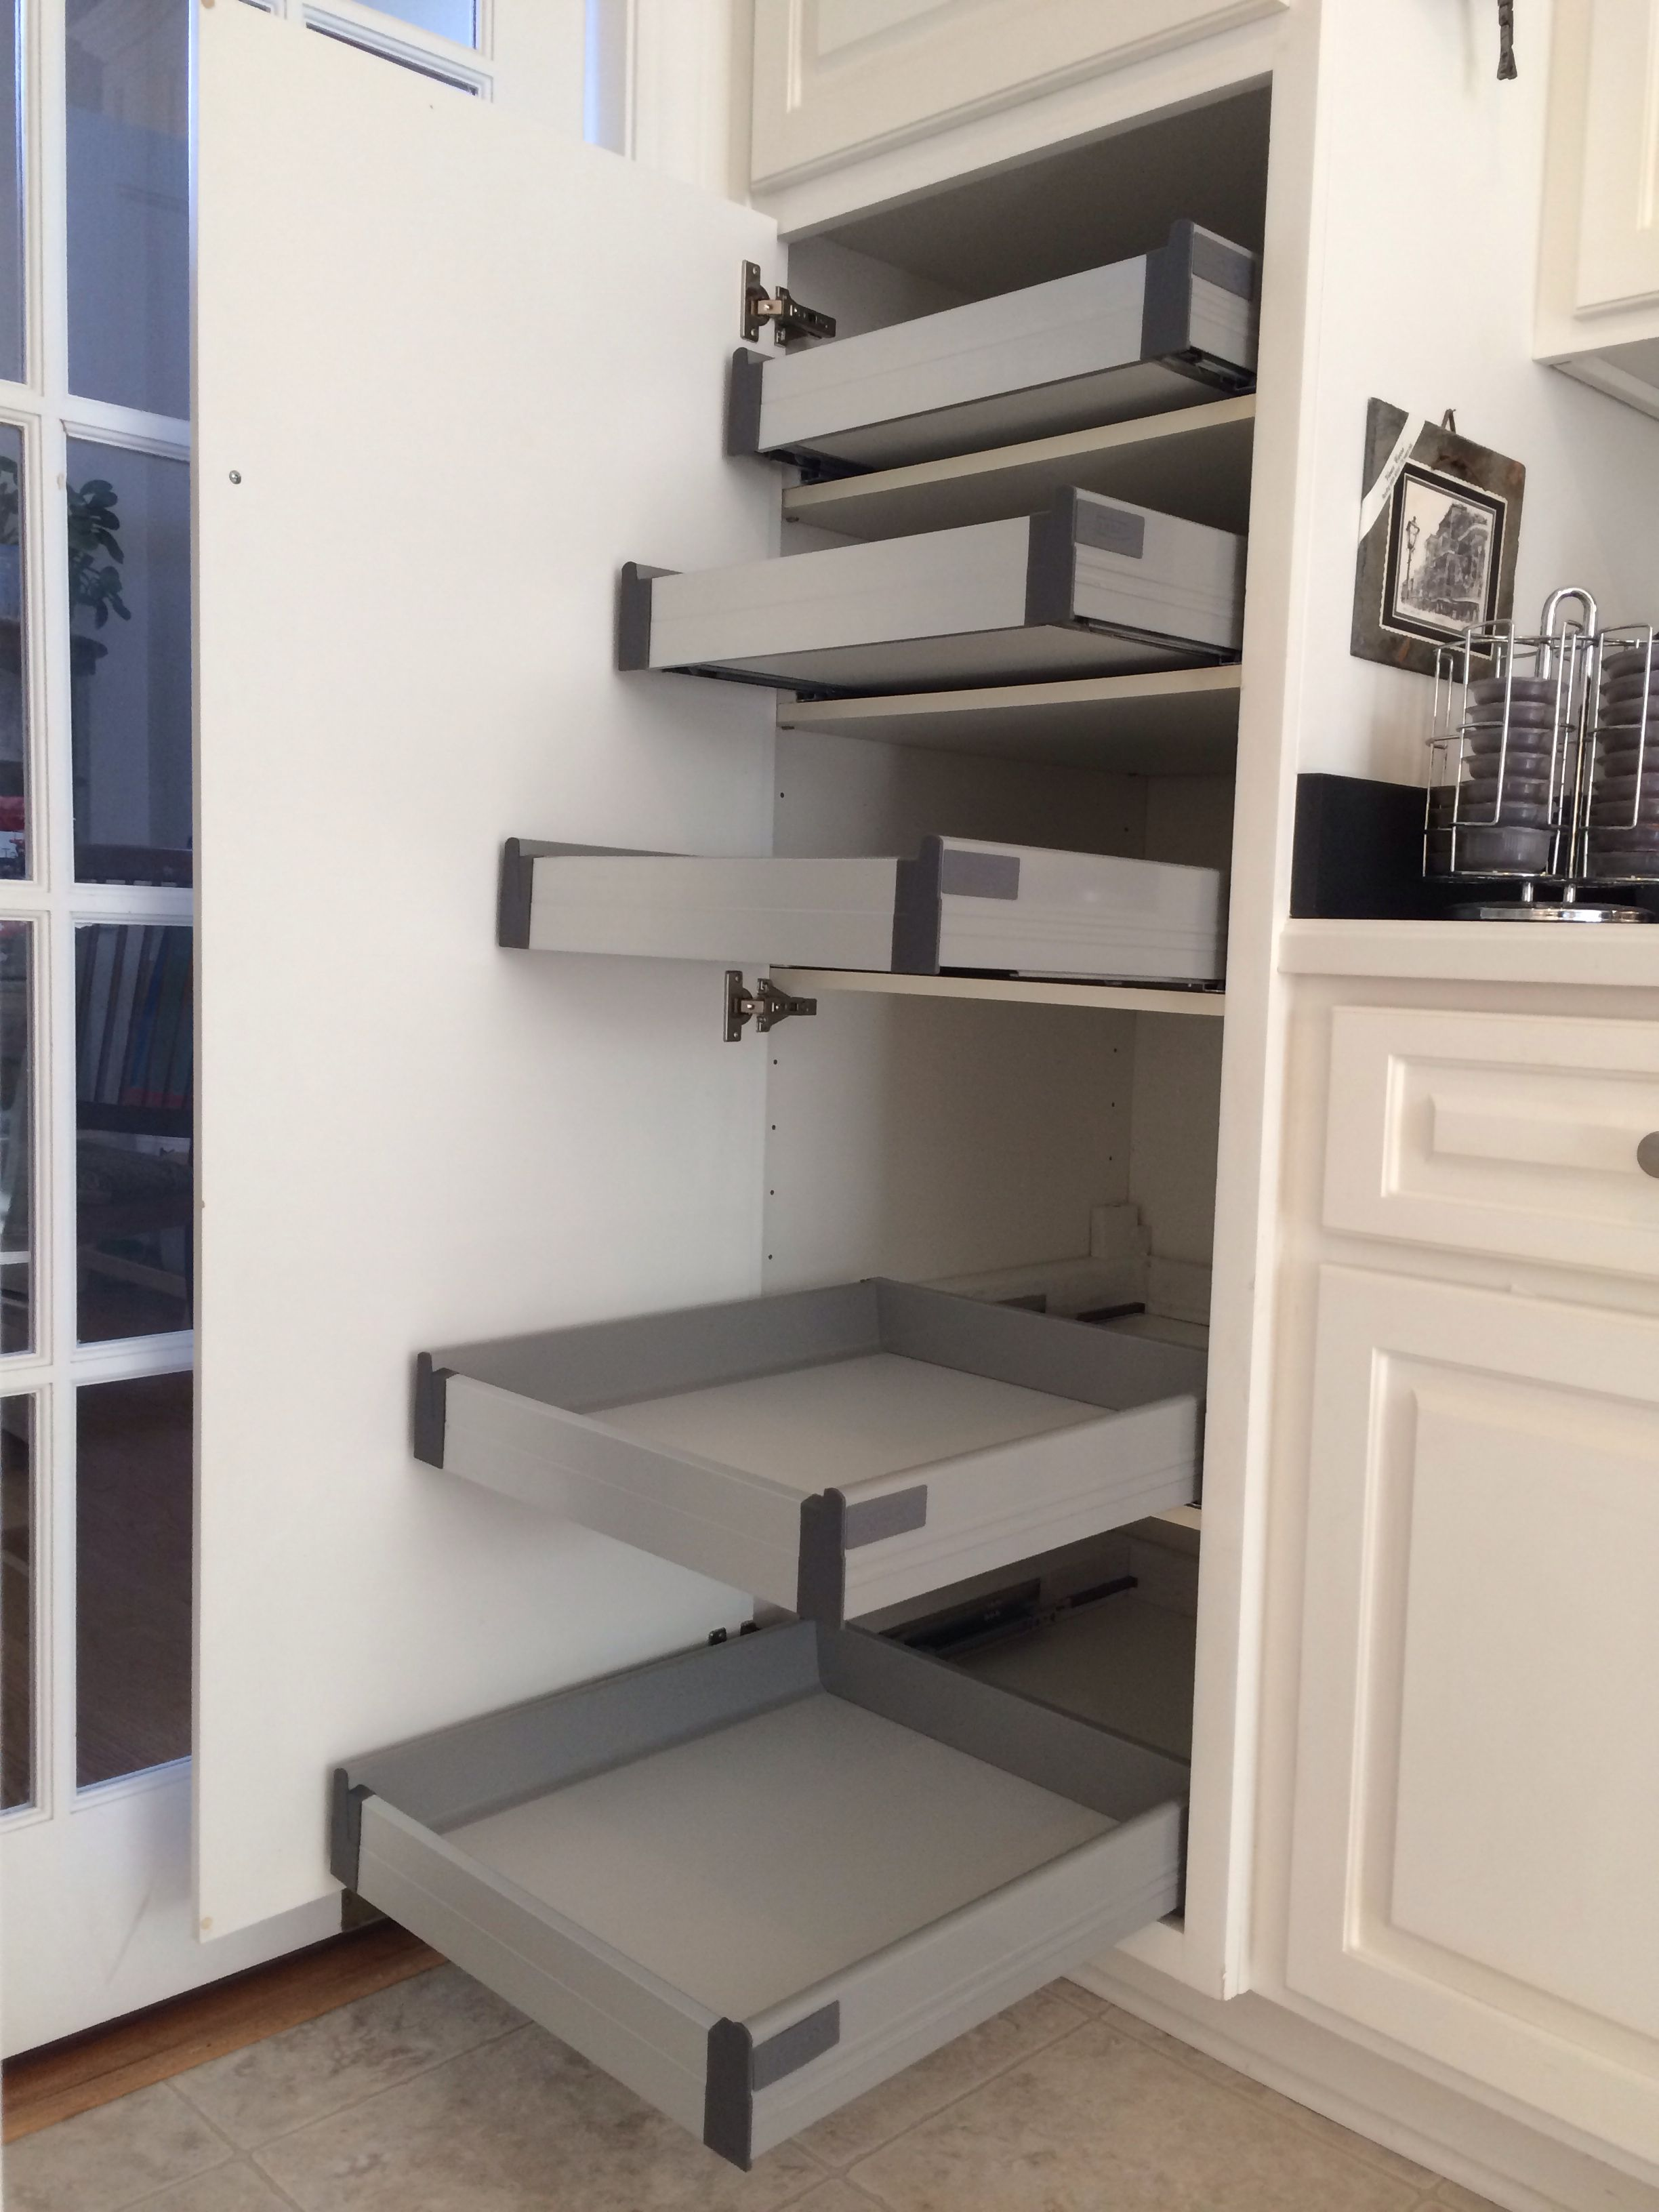 Ikea Rationell Pull Out Shelves W Dampers Retrofitted To Non